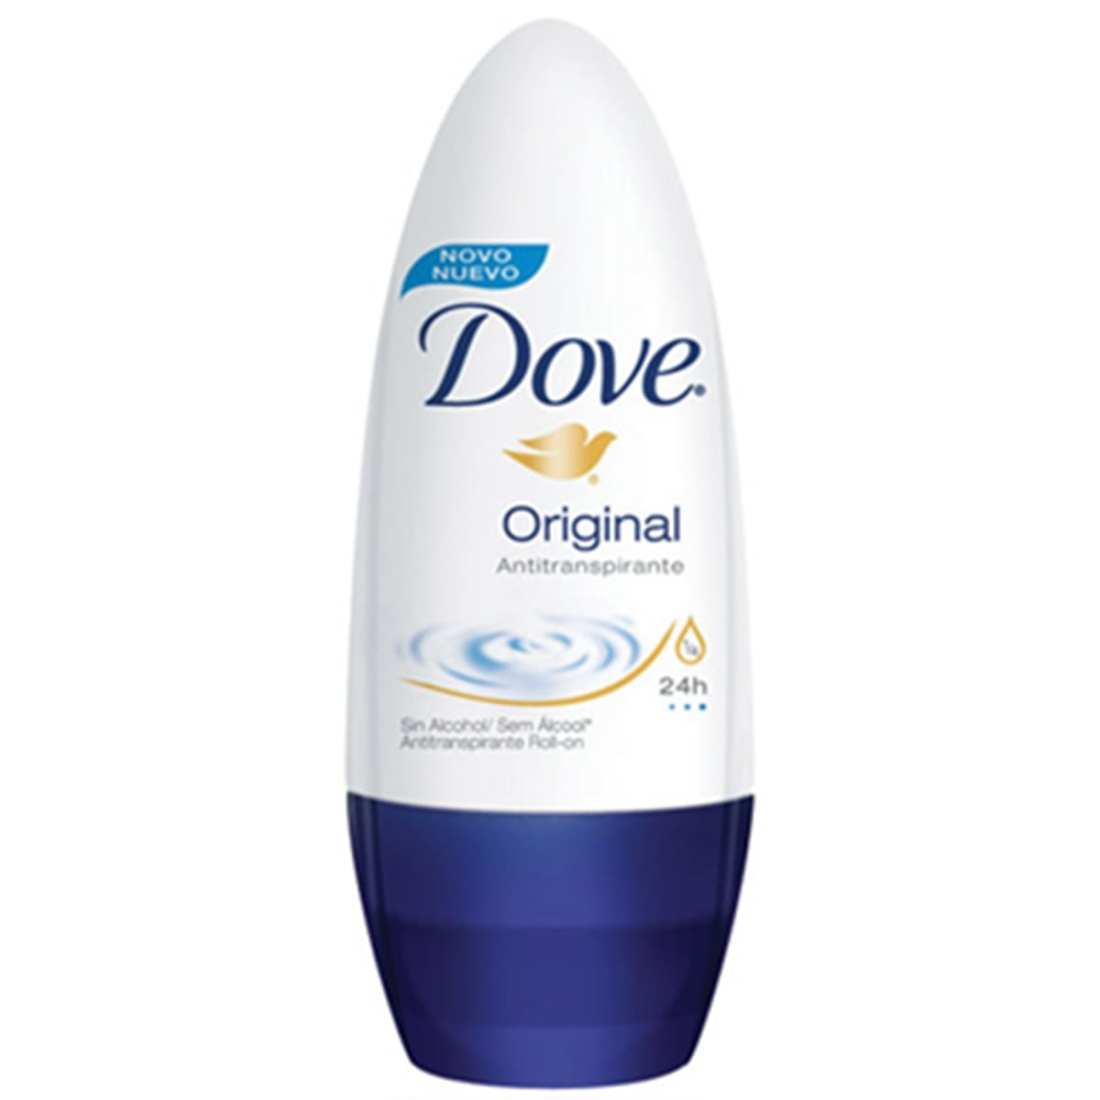 Dove roll on